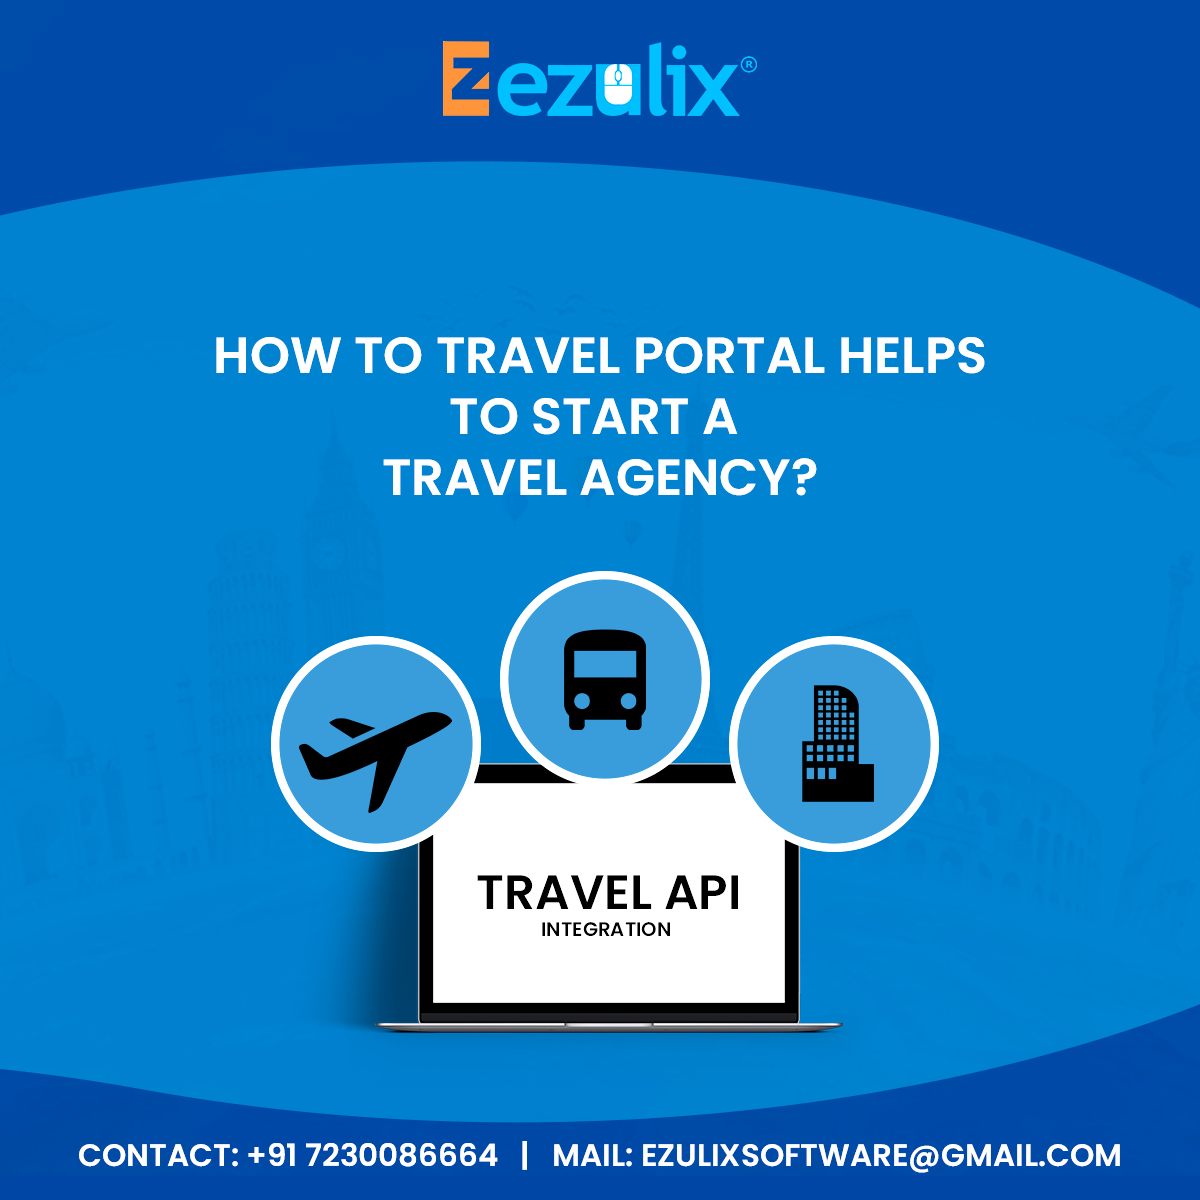 Ezulix - Web Design and Mobile App Development: travel portal